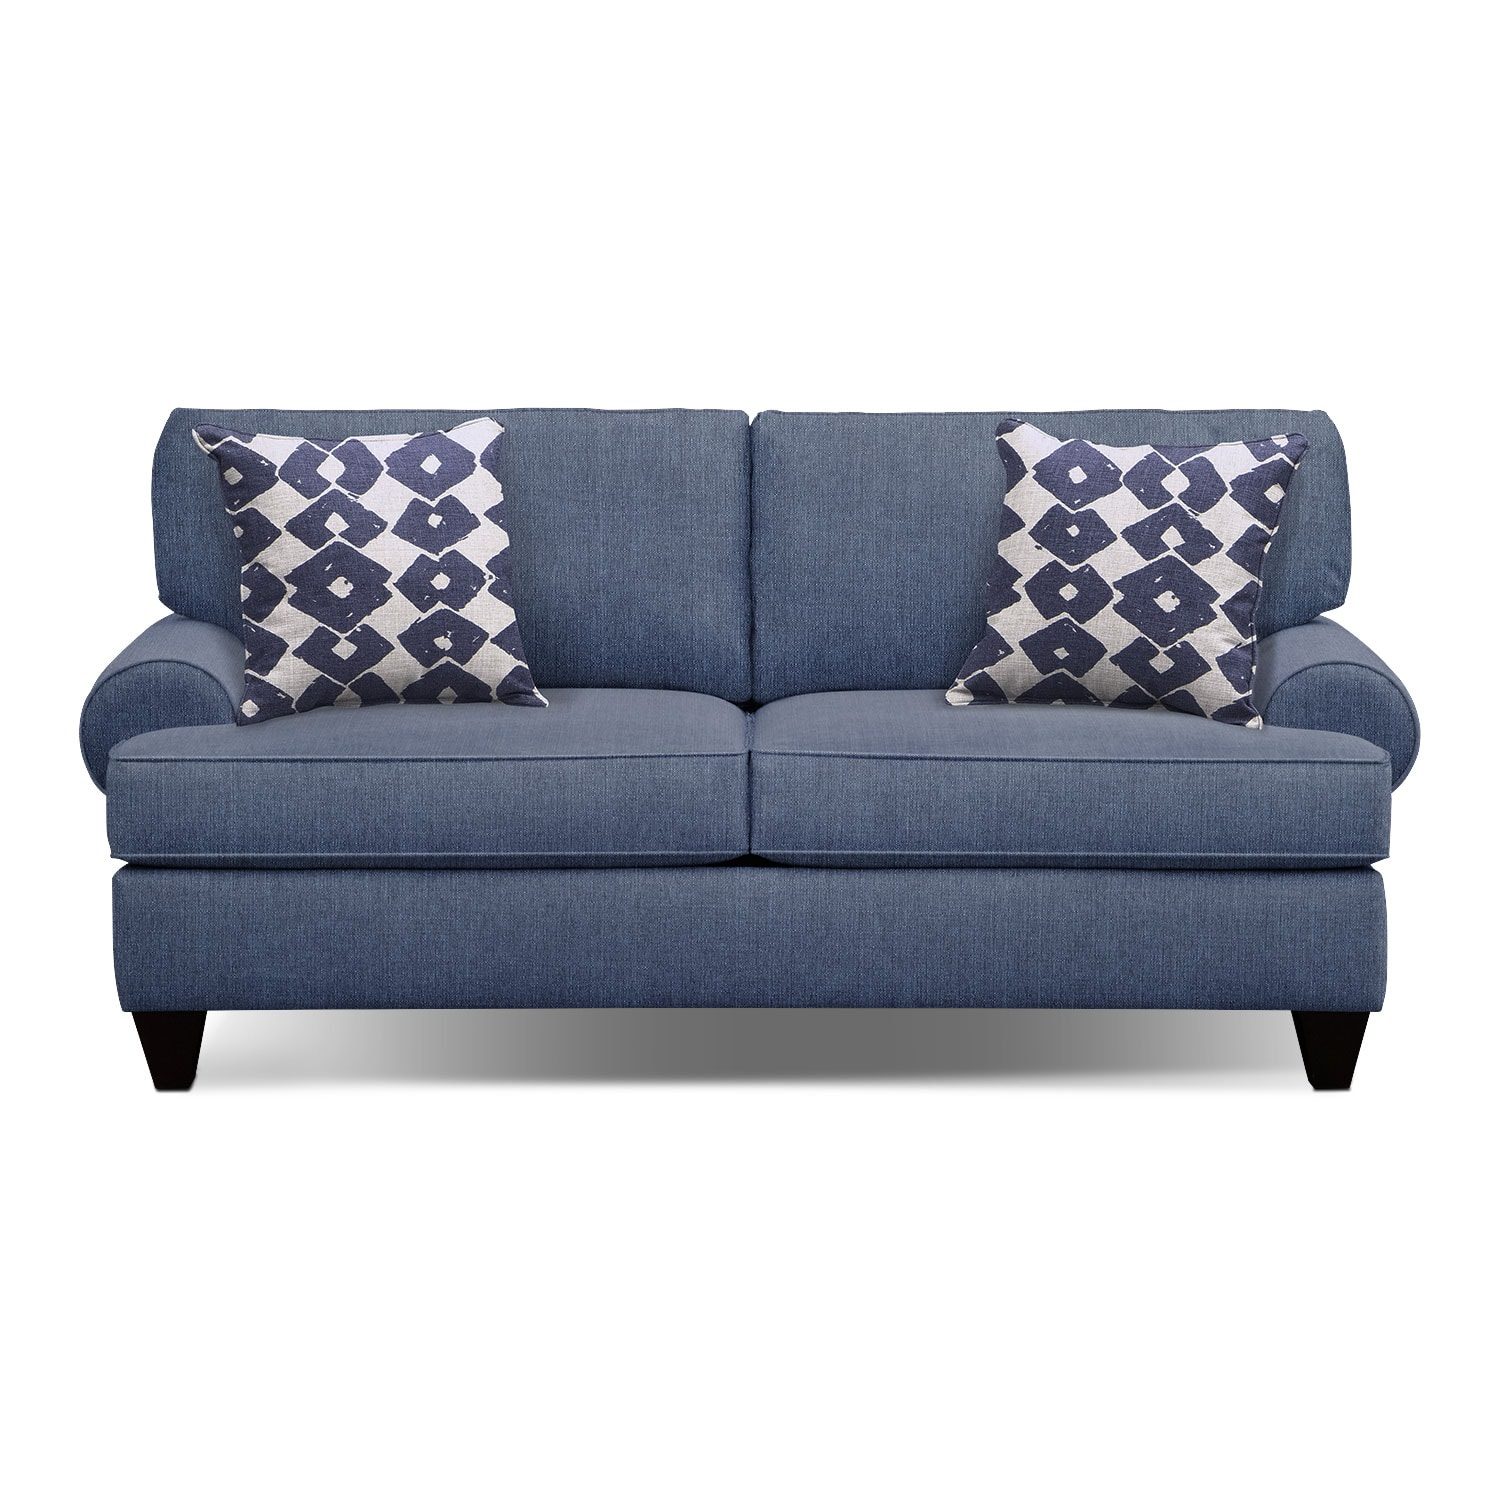 Sleeper Sofas   Value City Furniture   Value City Furniture and     Bailey Blue 79  Innerspring Sleeper Sofa